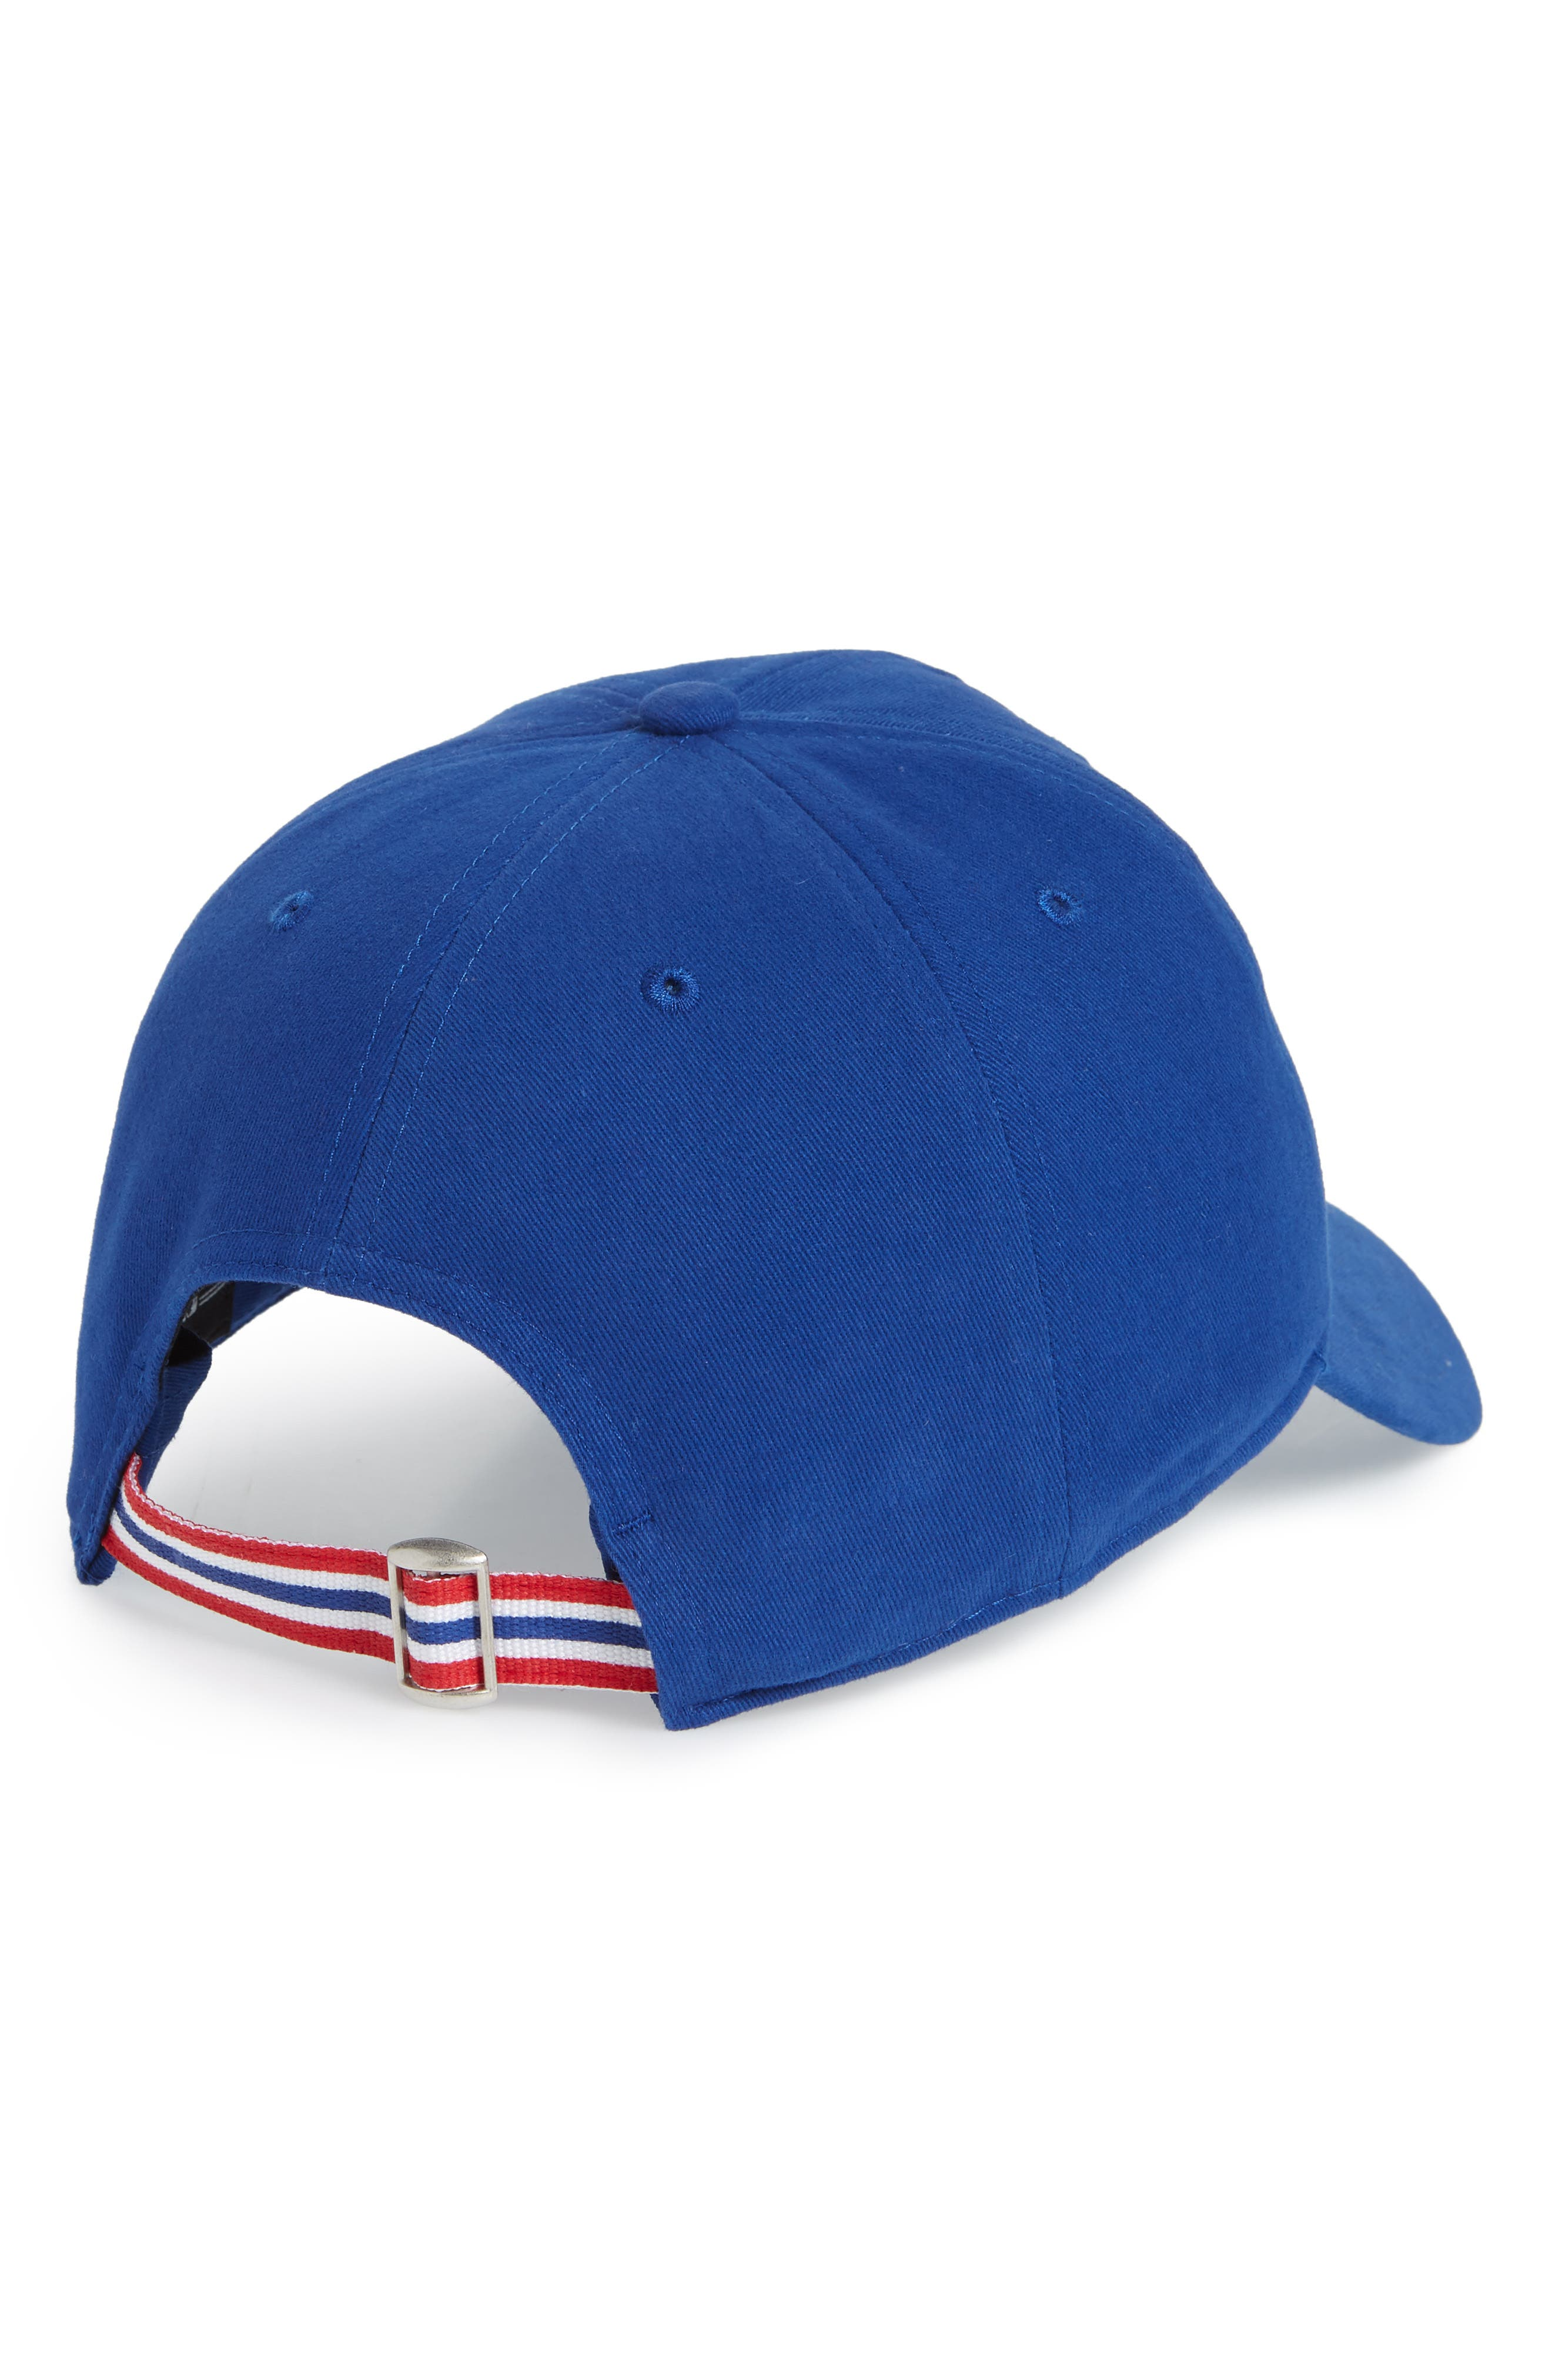 Courtney Clean-Up Chicago Cubs Baseball Cap,                             Alternate thumbnail 2, color,                             Blue